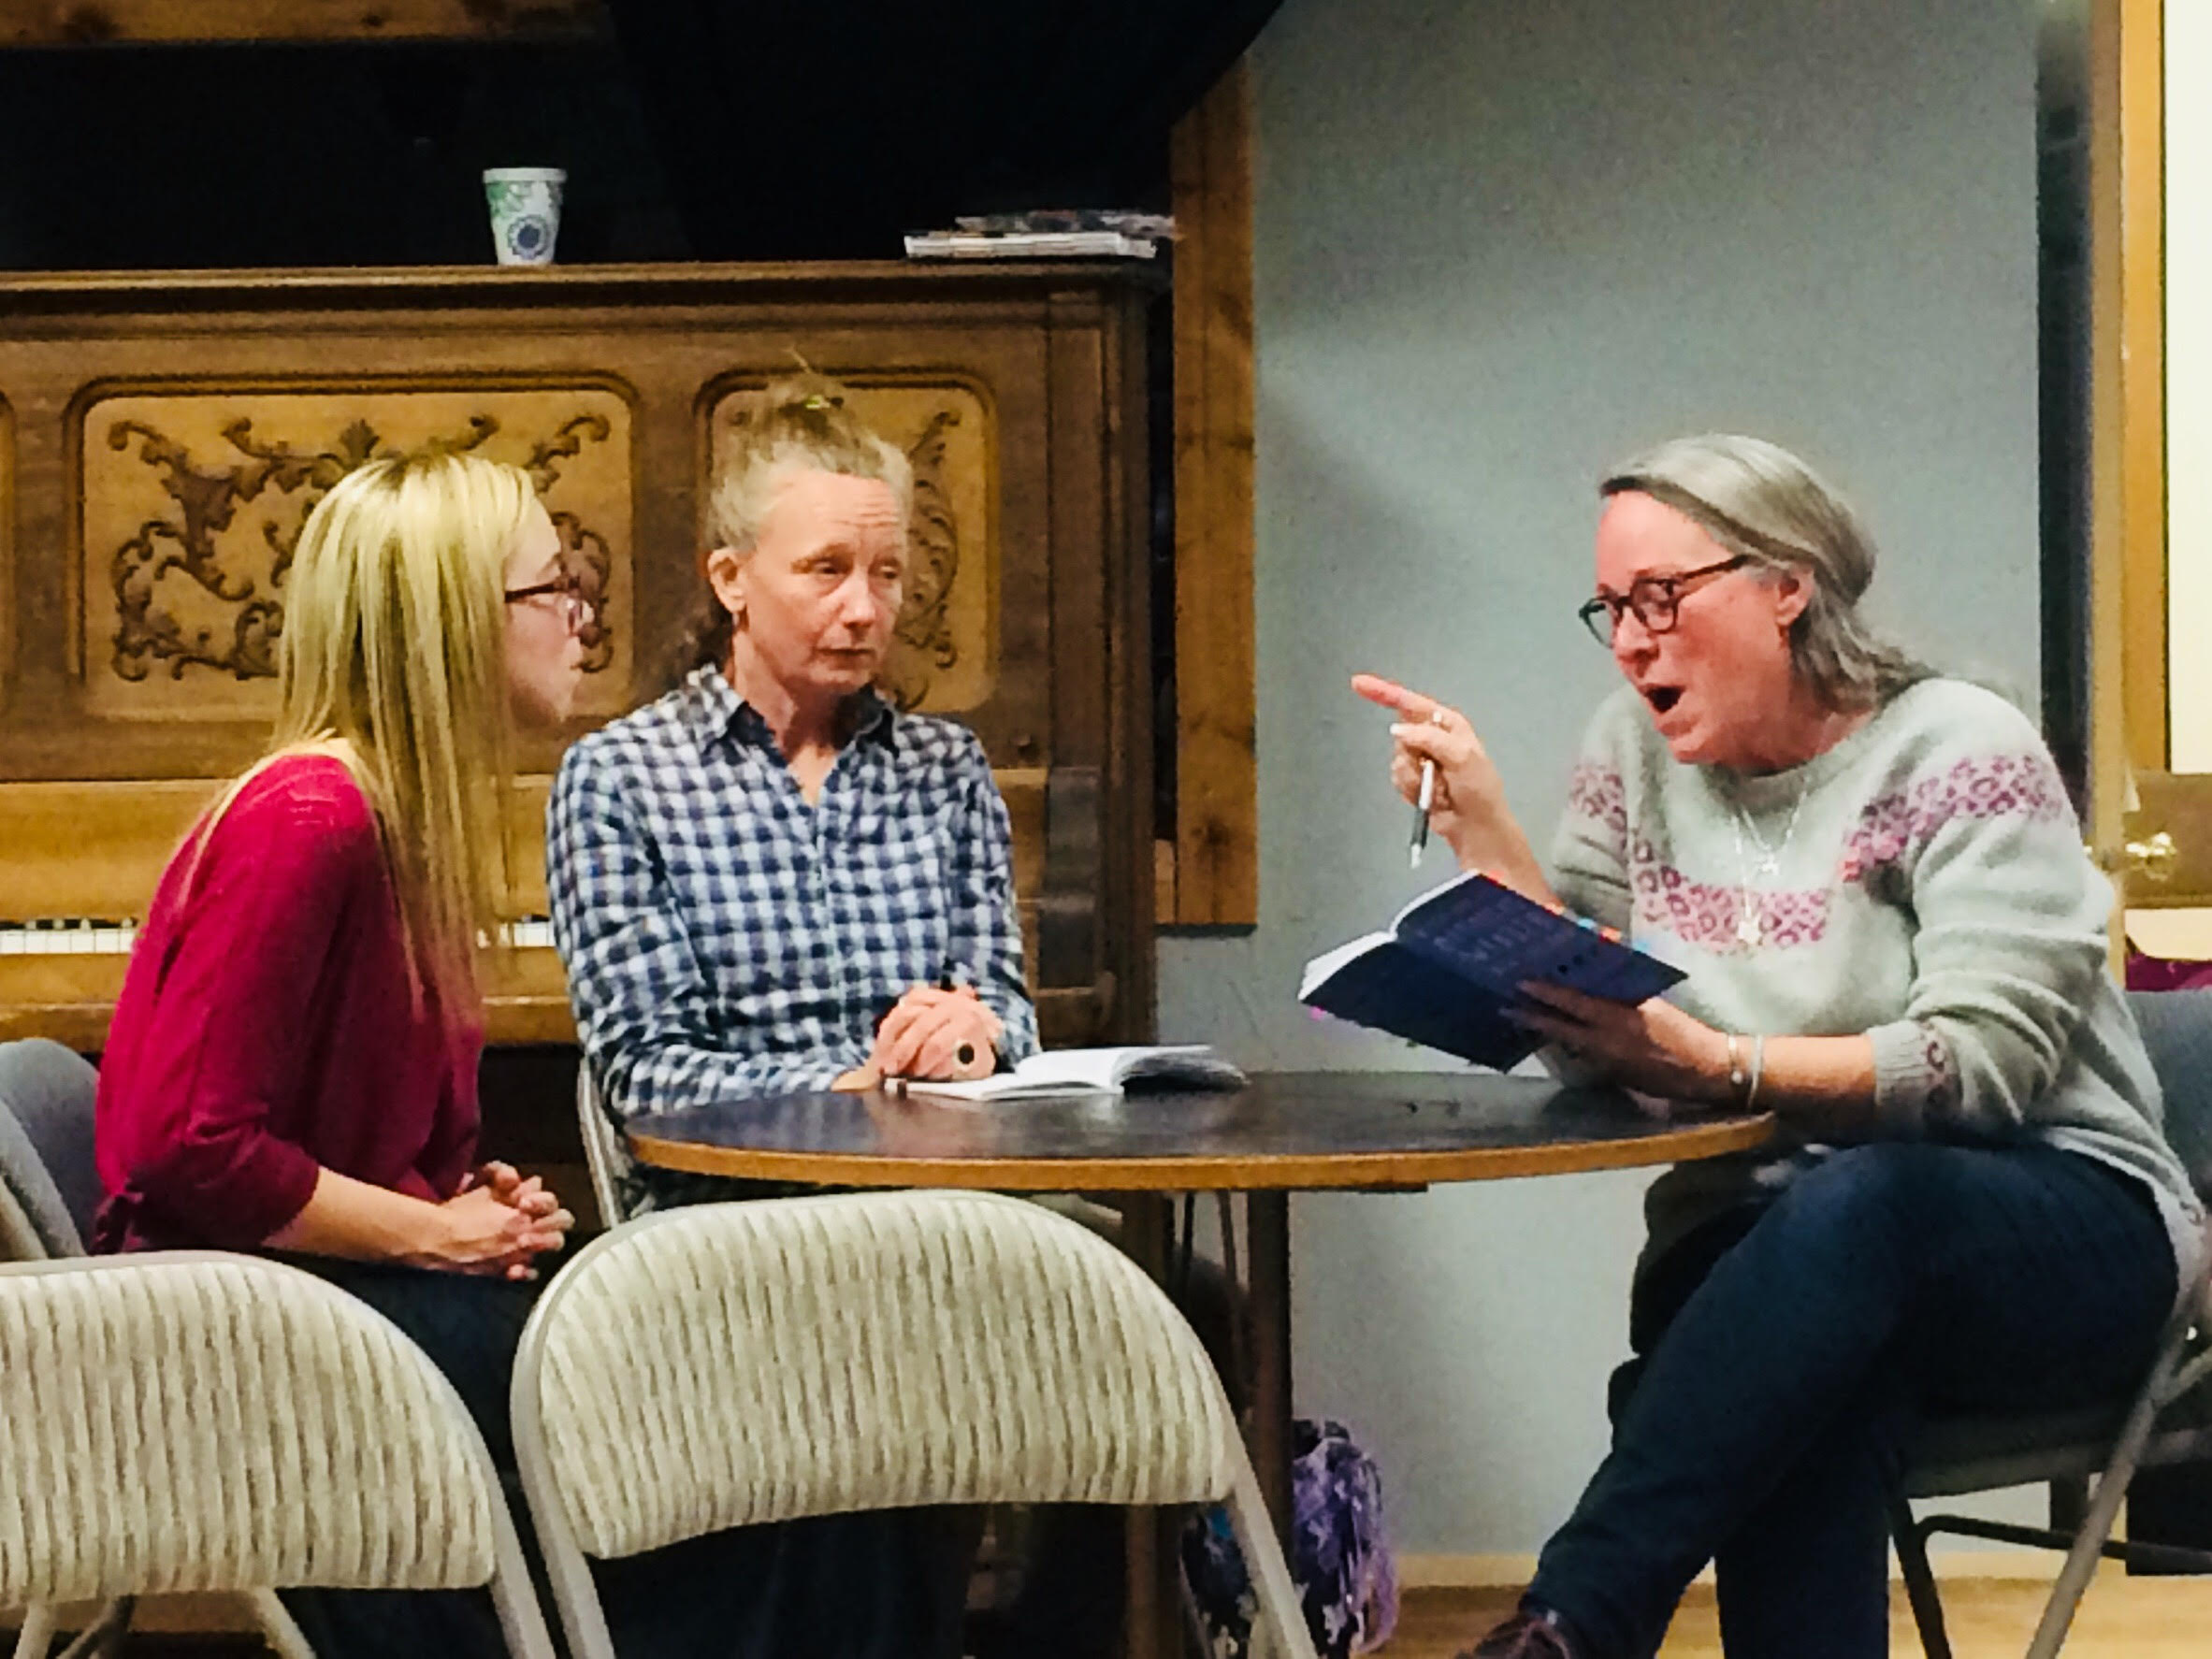 Mammoths cast starts work at the end of March! Left to right are Shawna Durney (Andromeda), Margot Darling (Greer) and Michelle Knickerbocker (Dean Wreen). Can't wait to see what these three come up with!